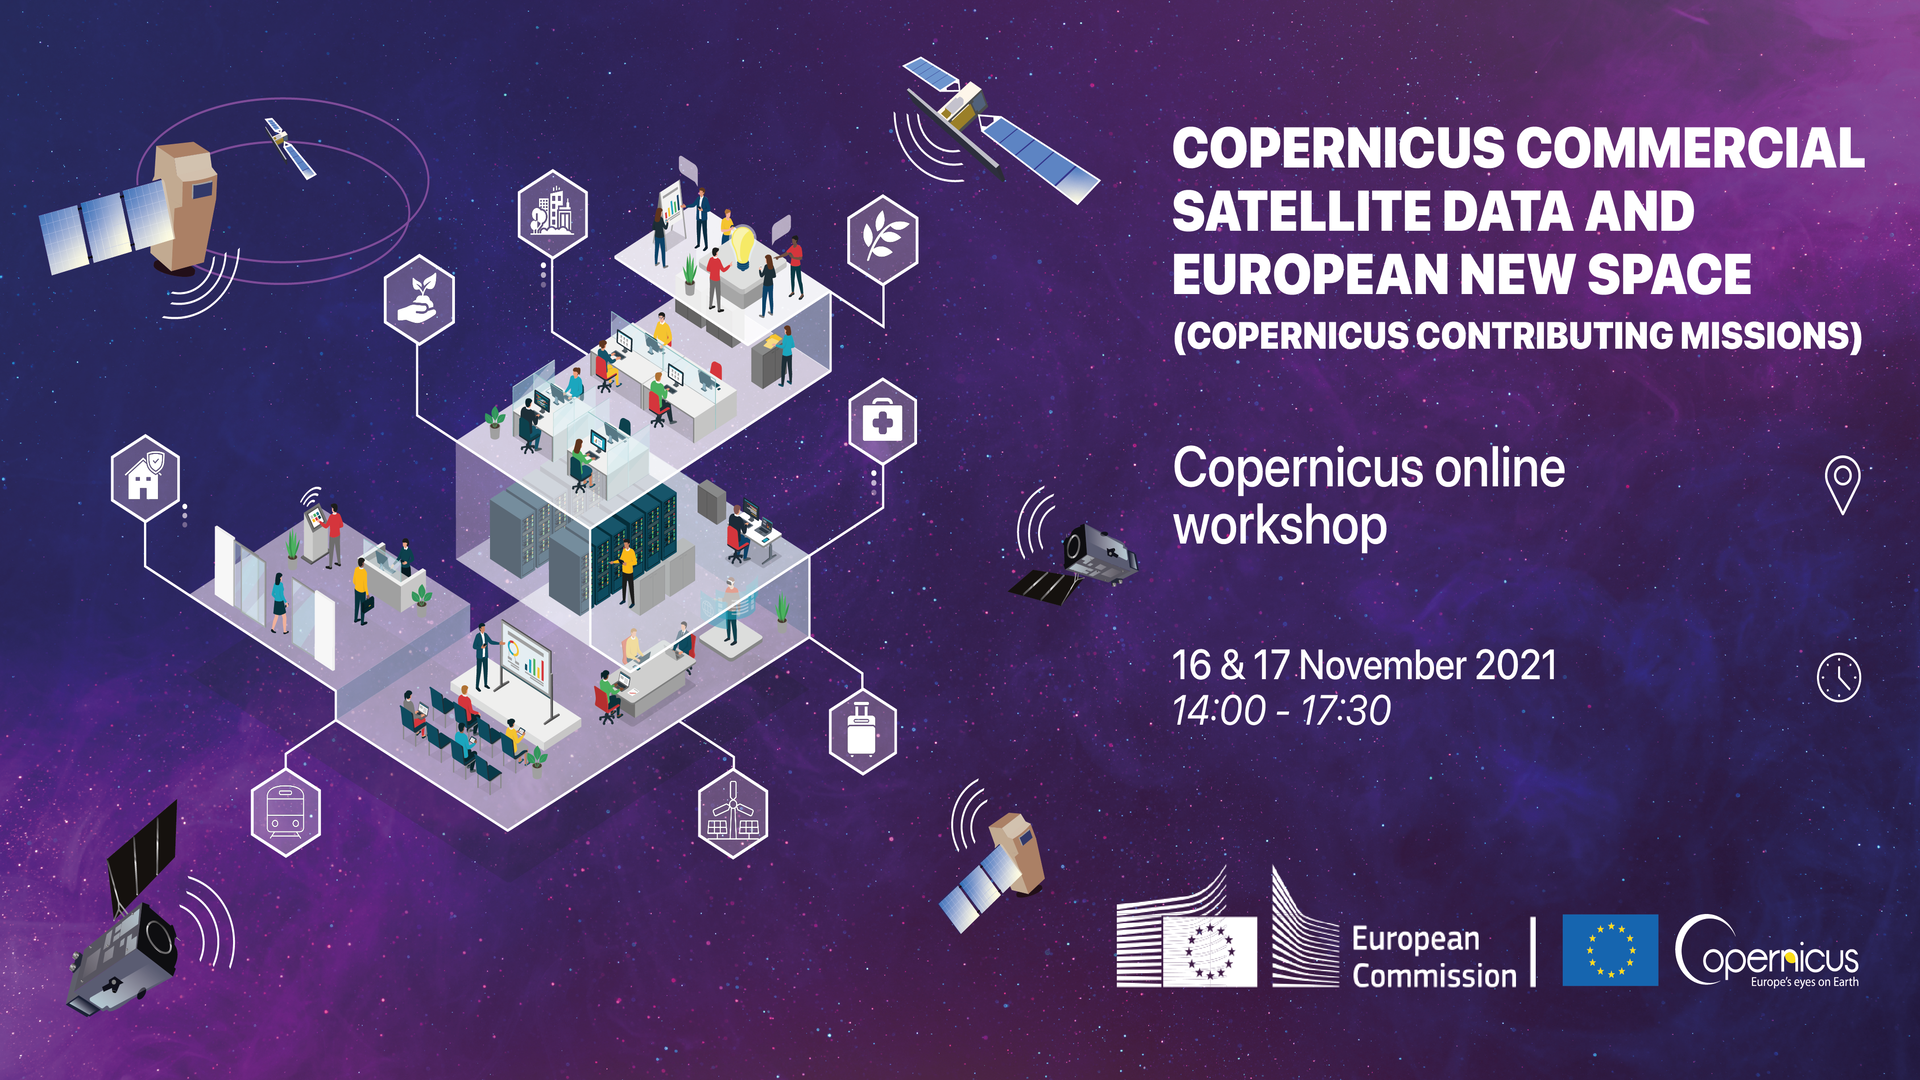 ASI - Copernicus commercial satellite data and European new space